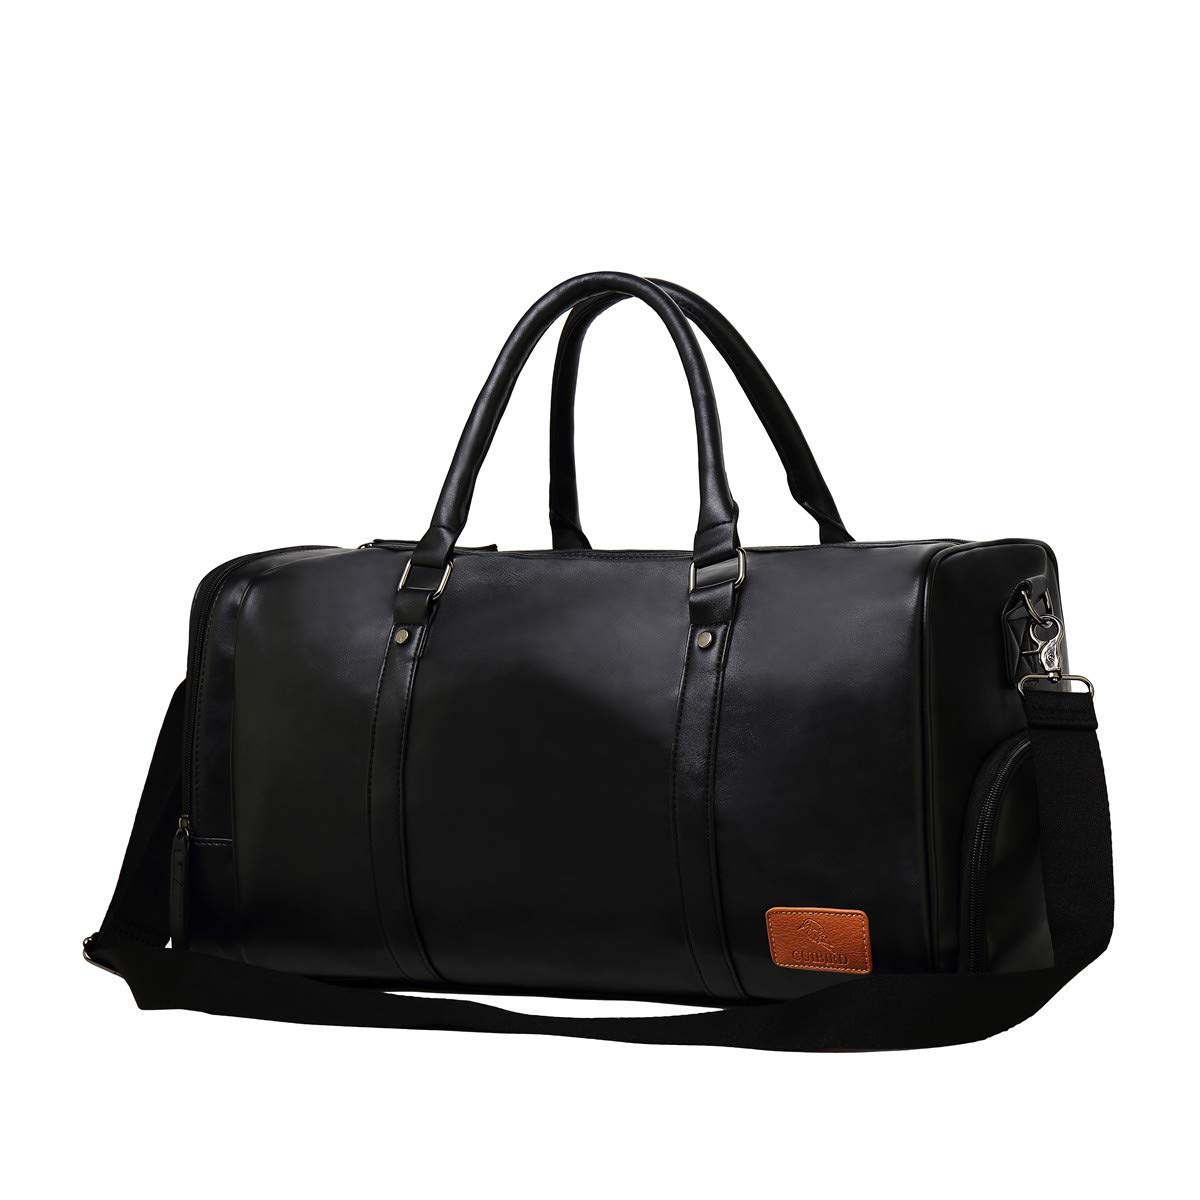 9226d00a1766 CUIBIRD Mens & Womens 40L Large Overnight Bag Vintage Leather Travel Duffel  Bag Waterproof Sports Training Tote Bag with Shoes Compartment - Luggage ...